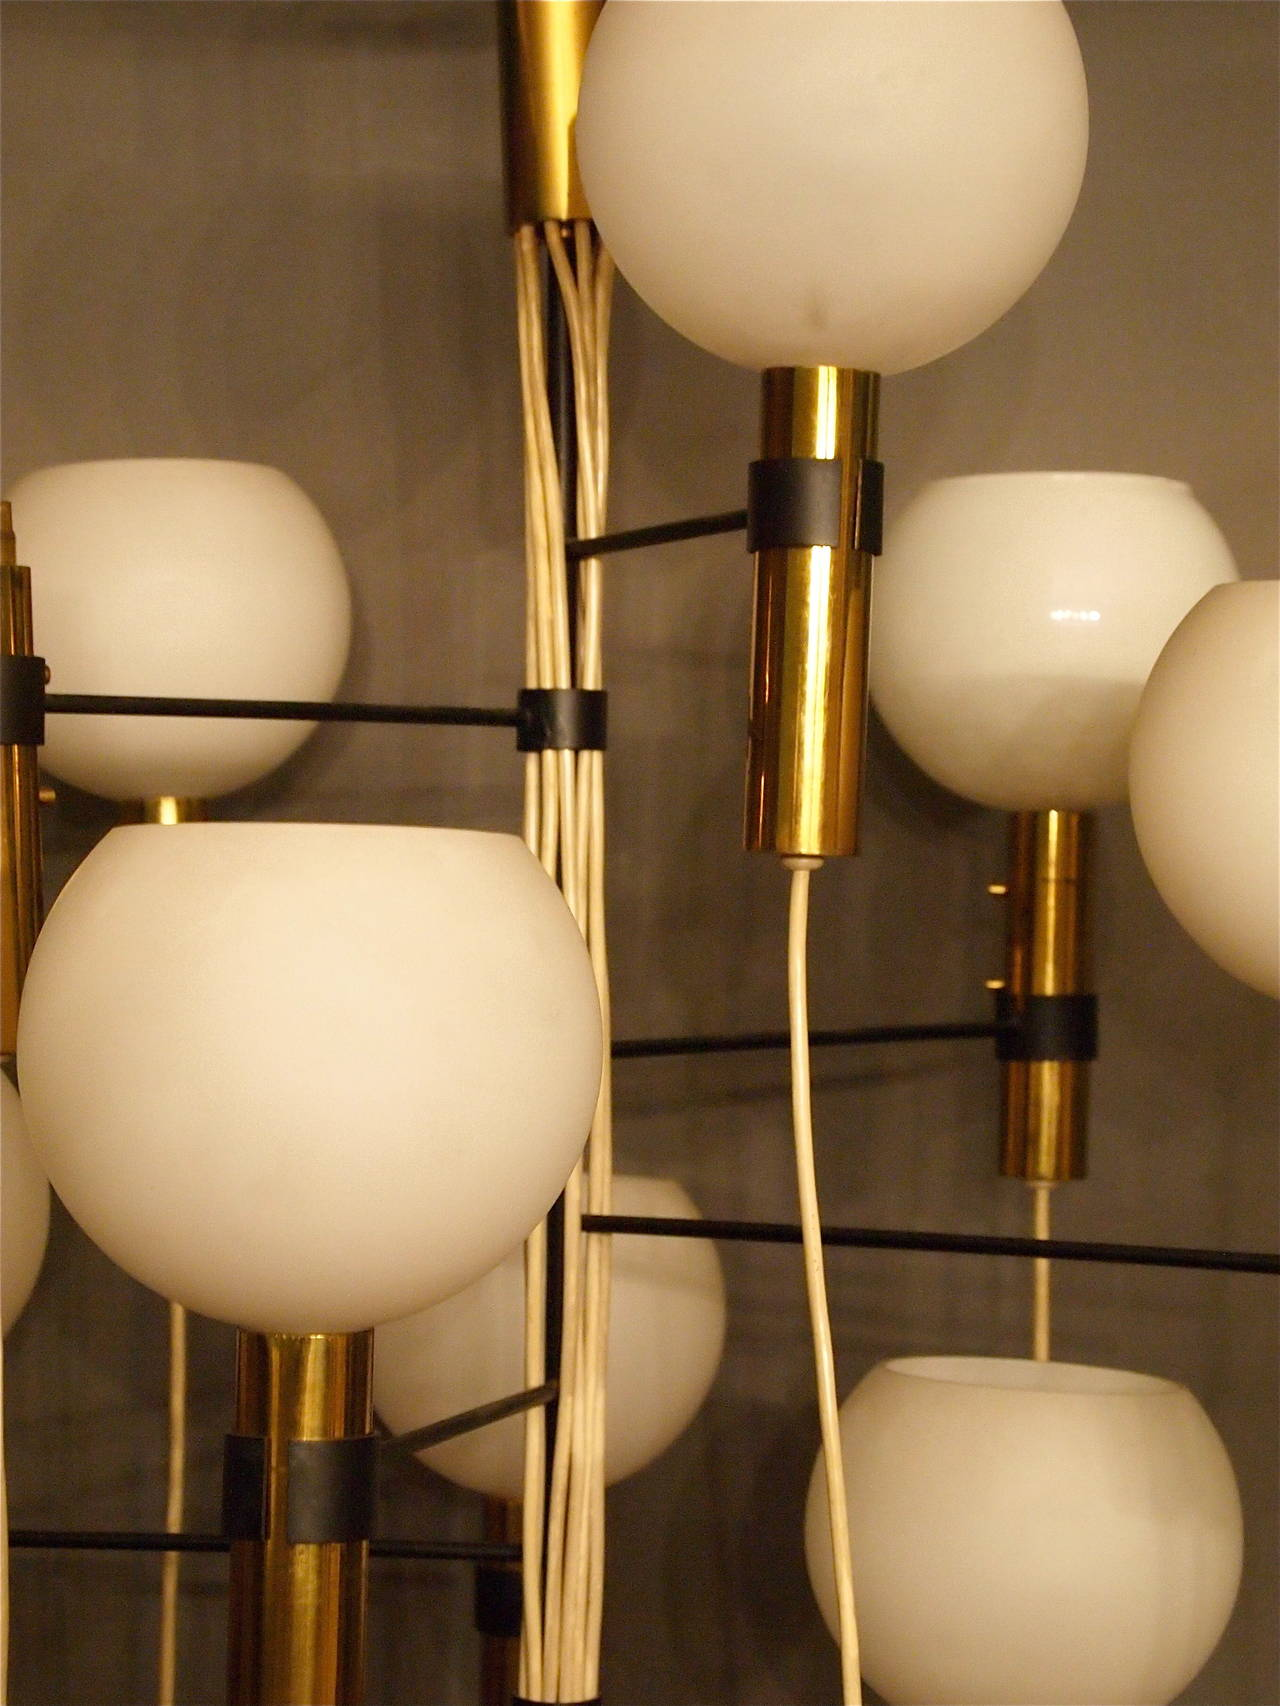 Chandelier Attributed to Gino Sarfatti, 1950s-1960s For Sale 3